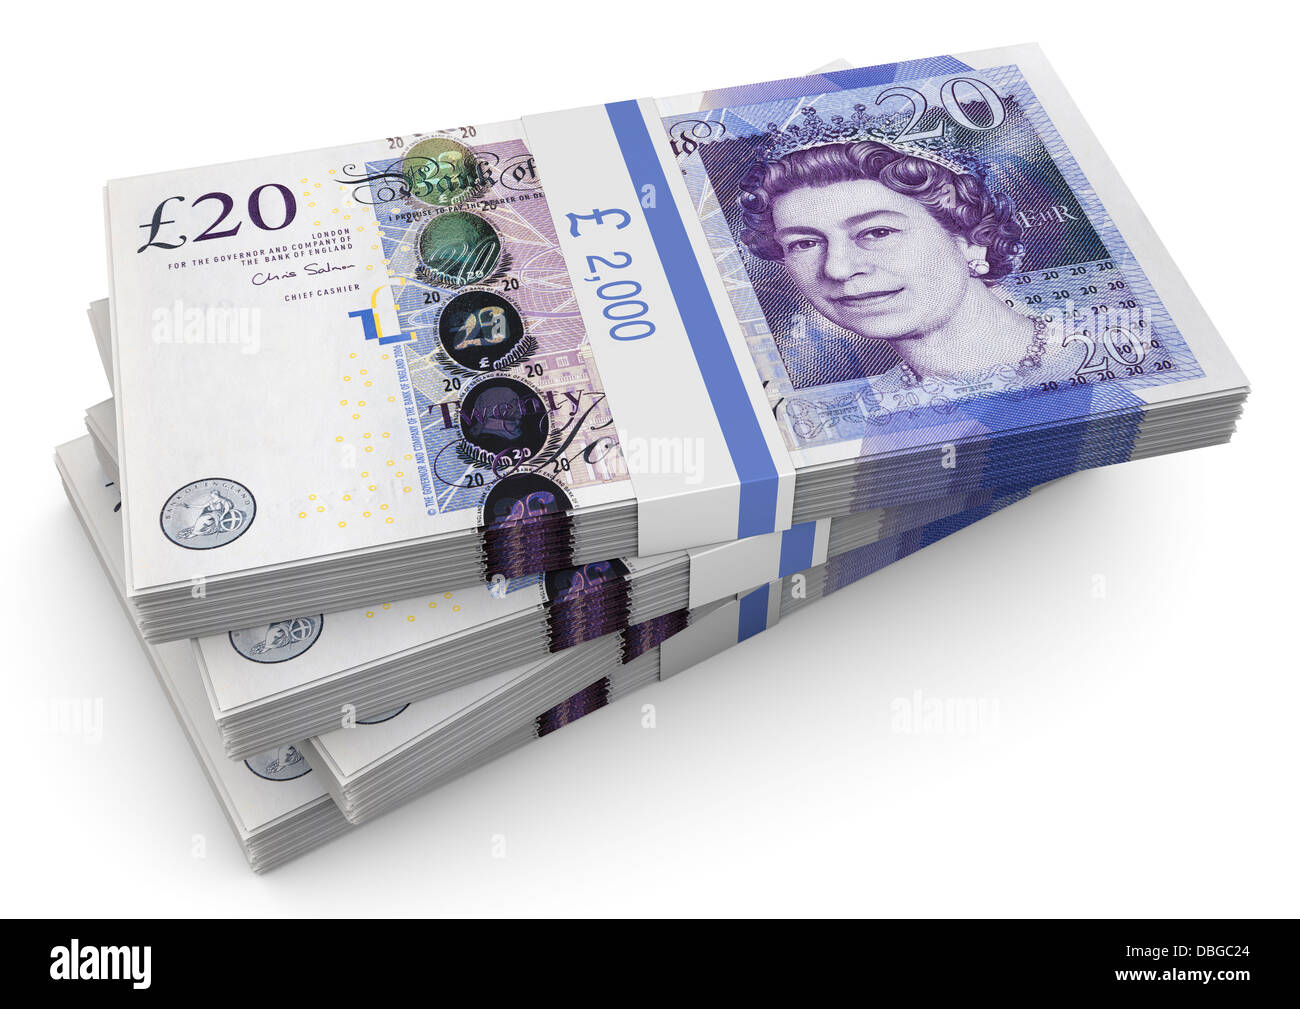 Stack of £20 pound notes on white background - Stock Image